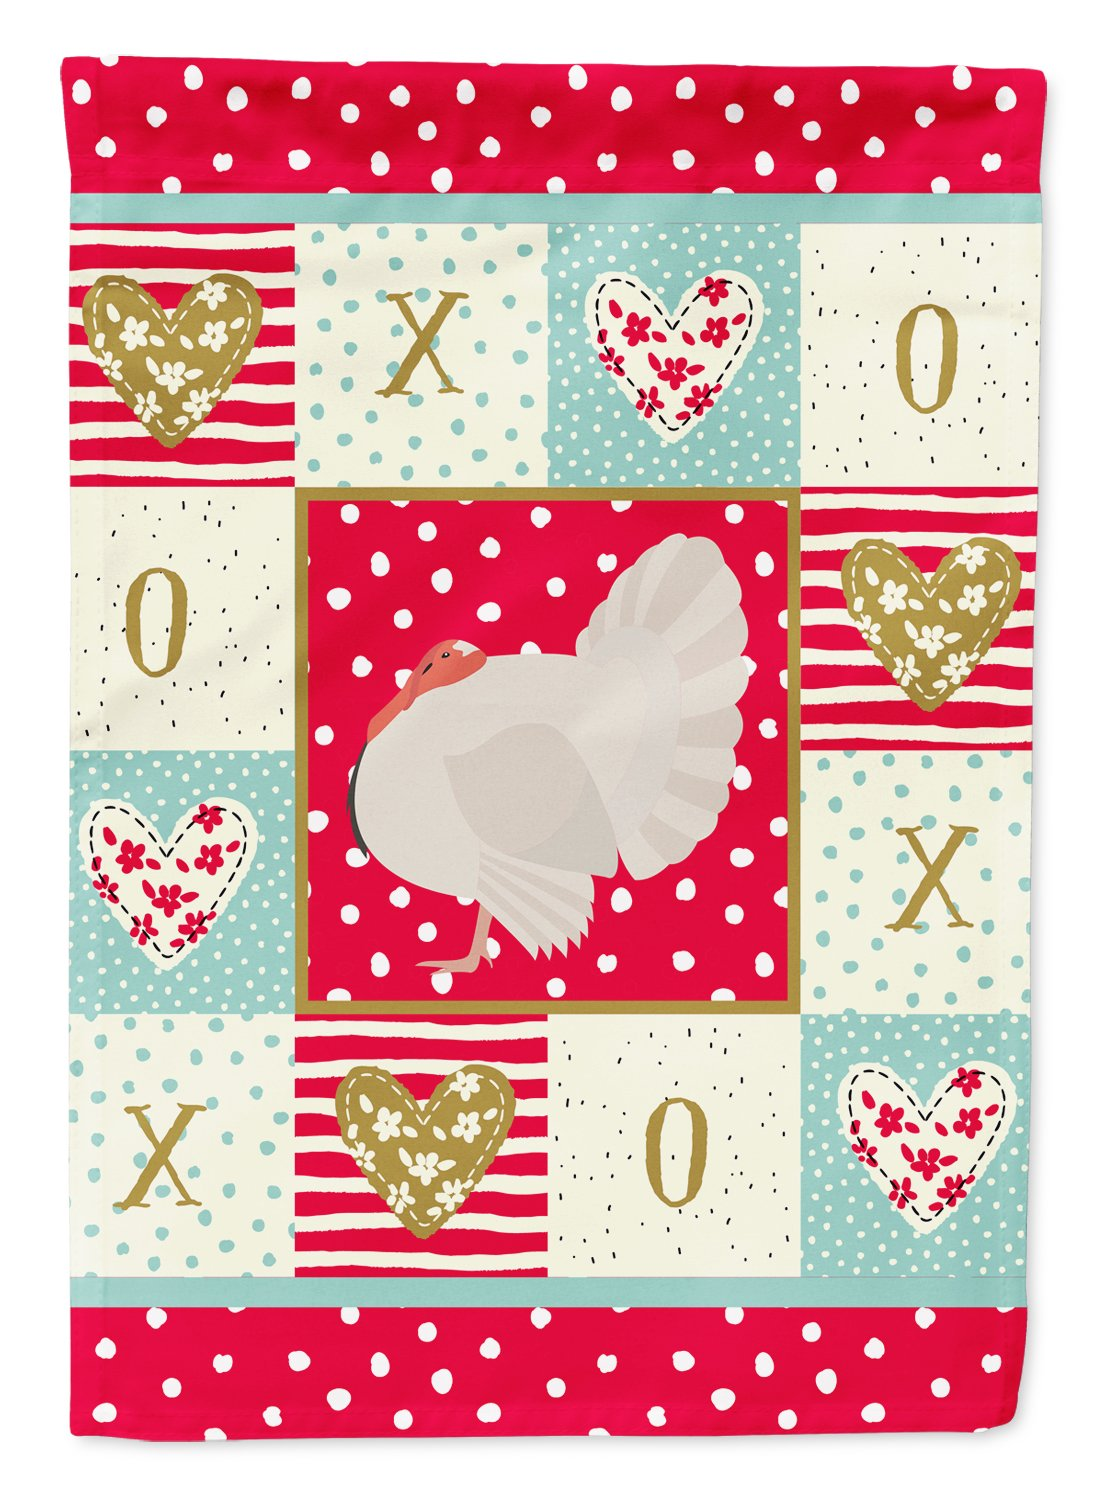 White Holland Turkey Love Flag Garden Size CK5410GF by Caroline's Treasures